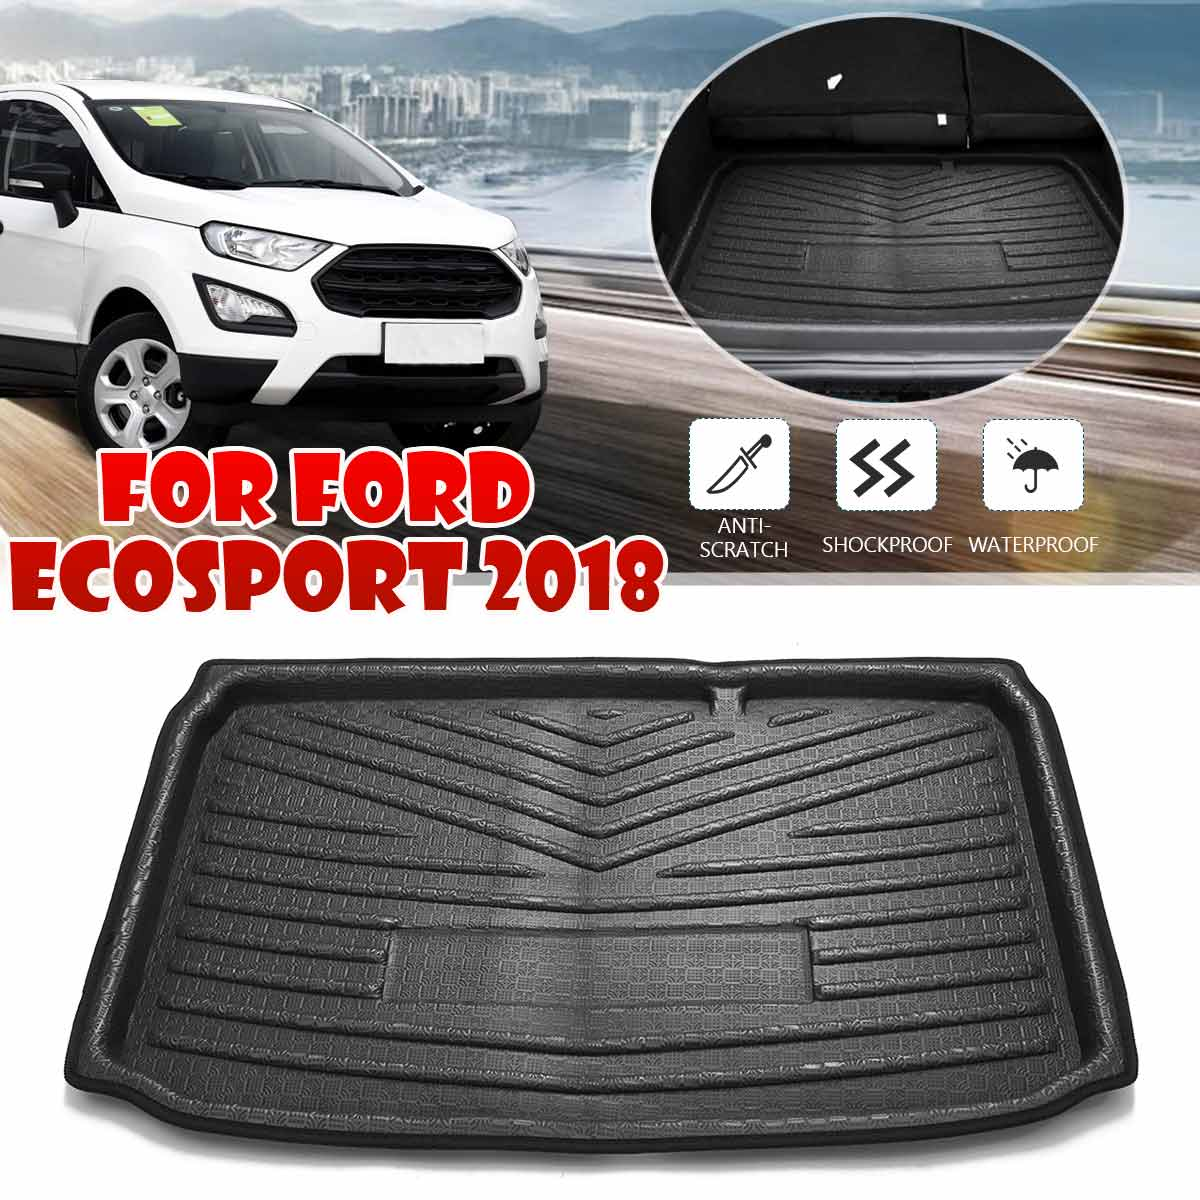 Rear Trunk Cargo Boot Liner Tray Floor Mat  For Ford EcoSport 2018 2019 2020+ Floor Carpet Luggage Tray Black Auto Accessories